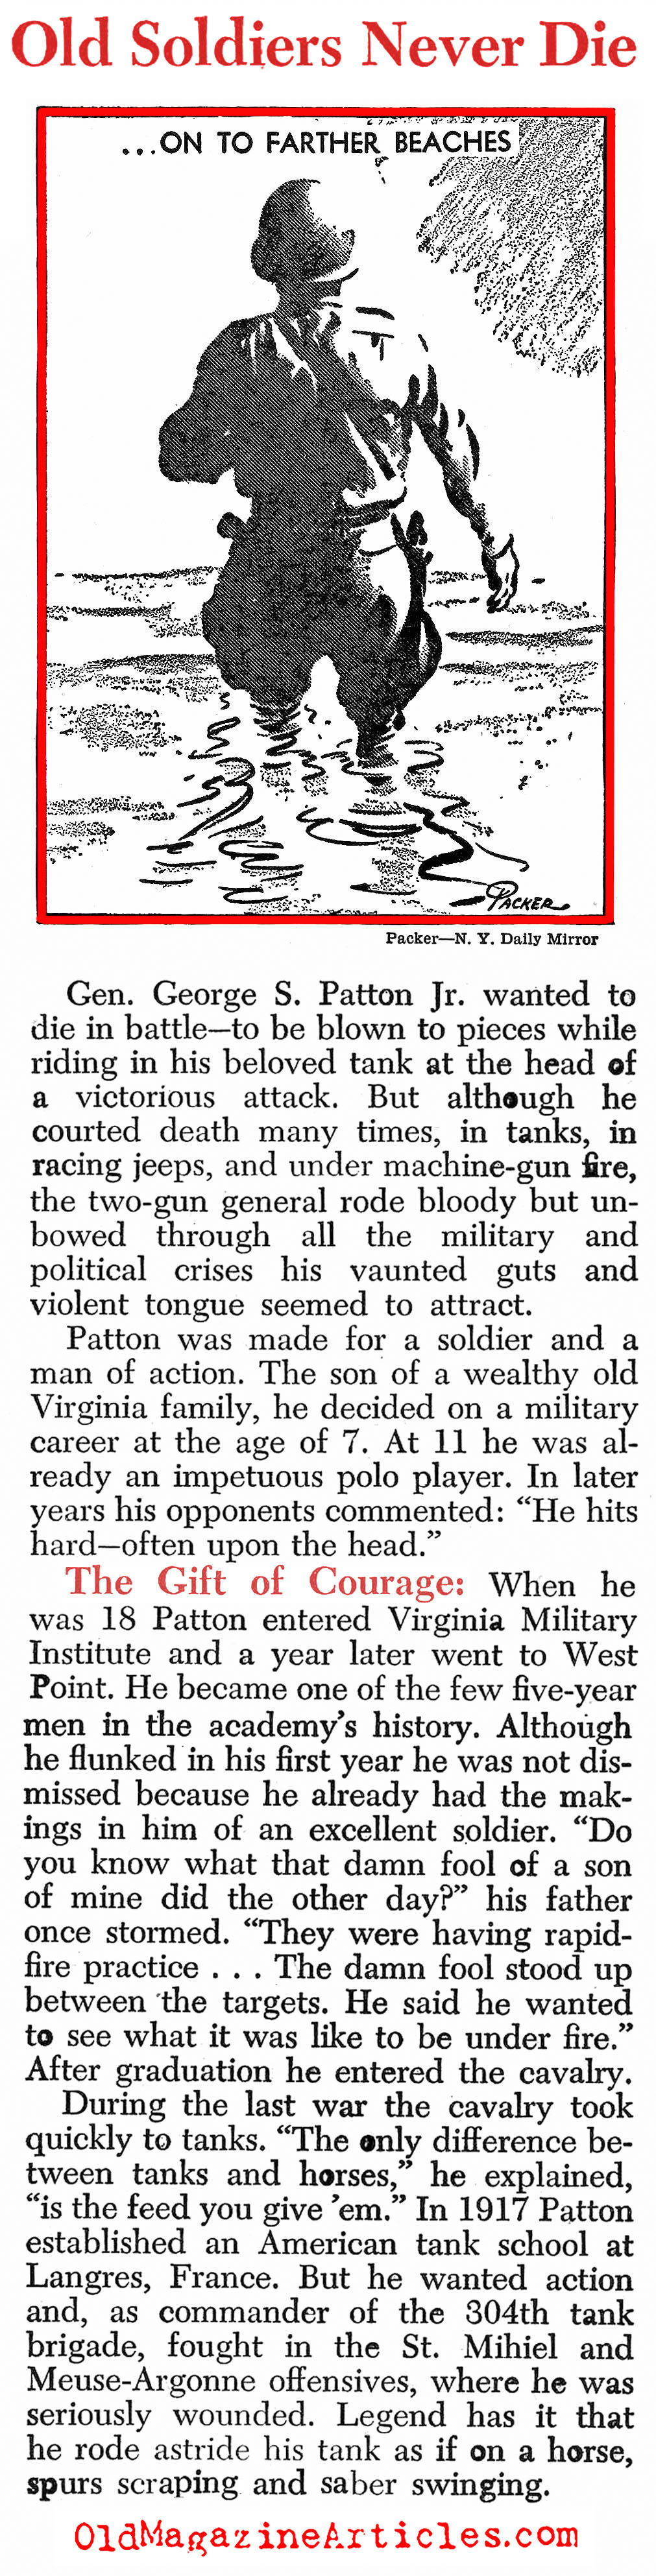 Ol' Blood 'N Guts Goes South (Newsweek, 1945)